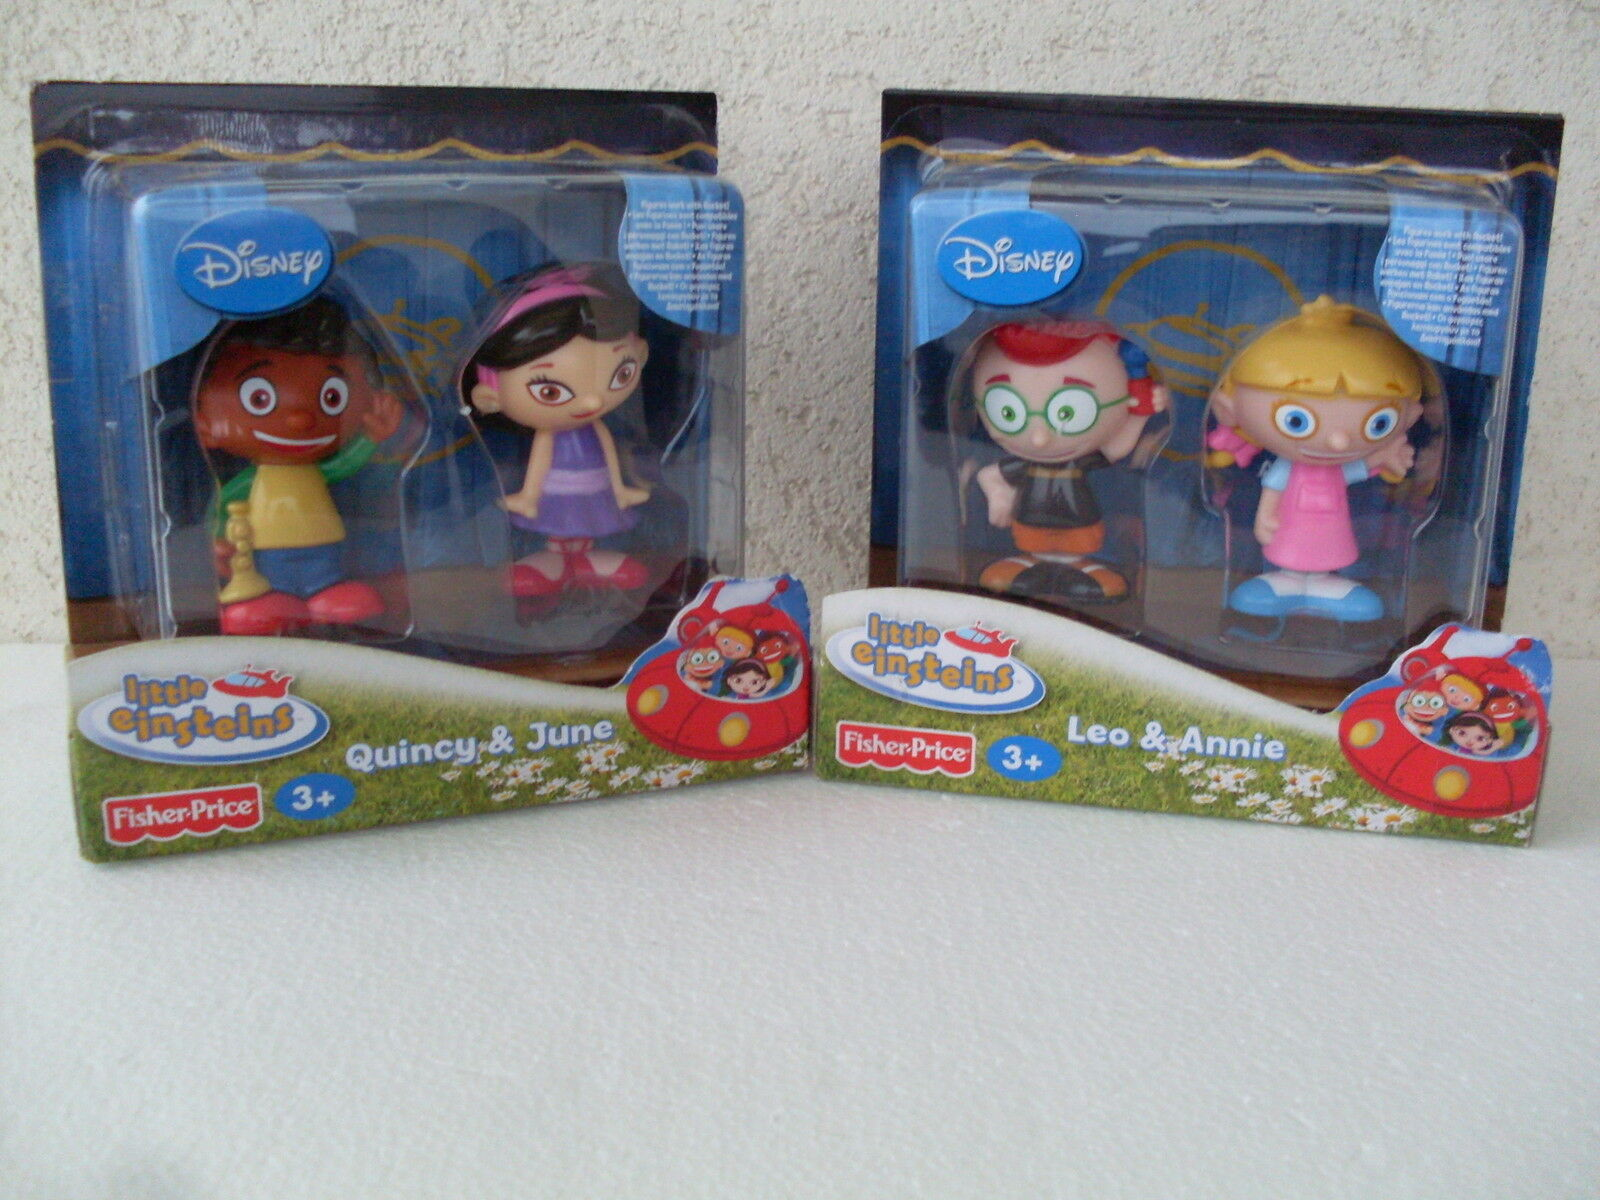 Quincy june leo annie little einsteins rocket personaggi characters personnages